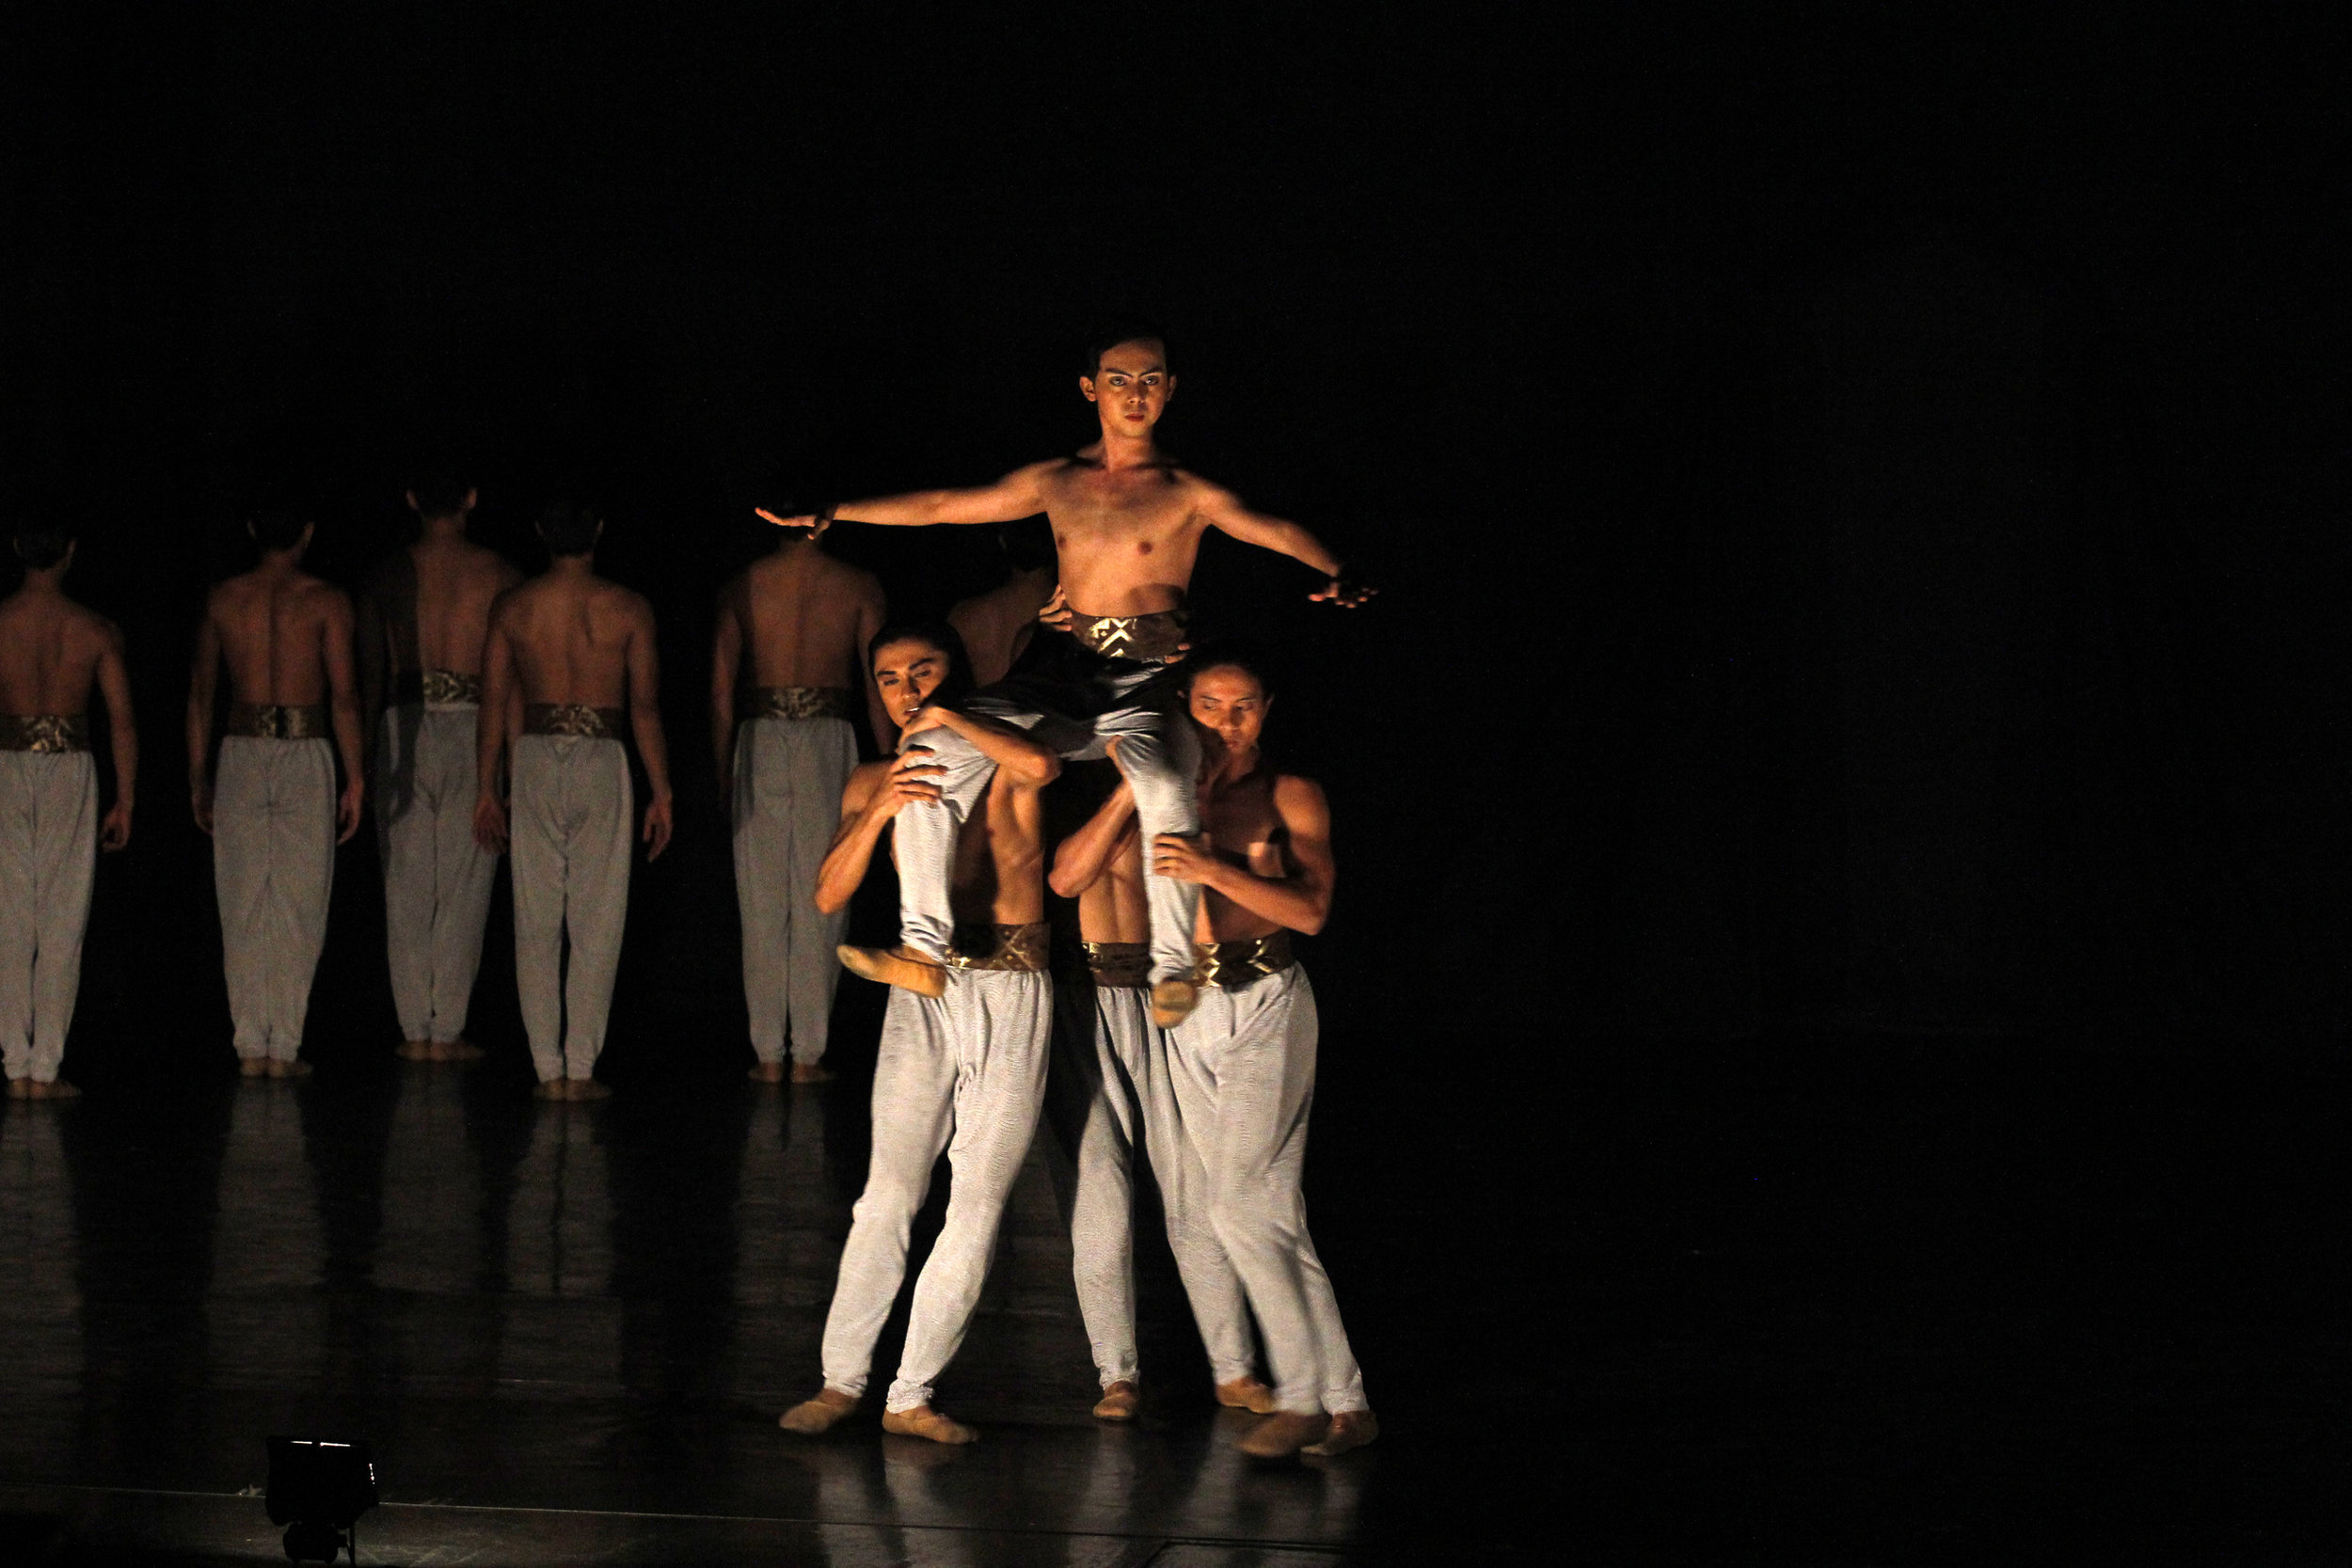 Sean Kevin Pelegrin - With Ballet Manila since 2015